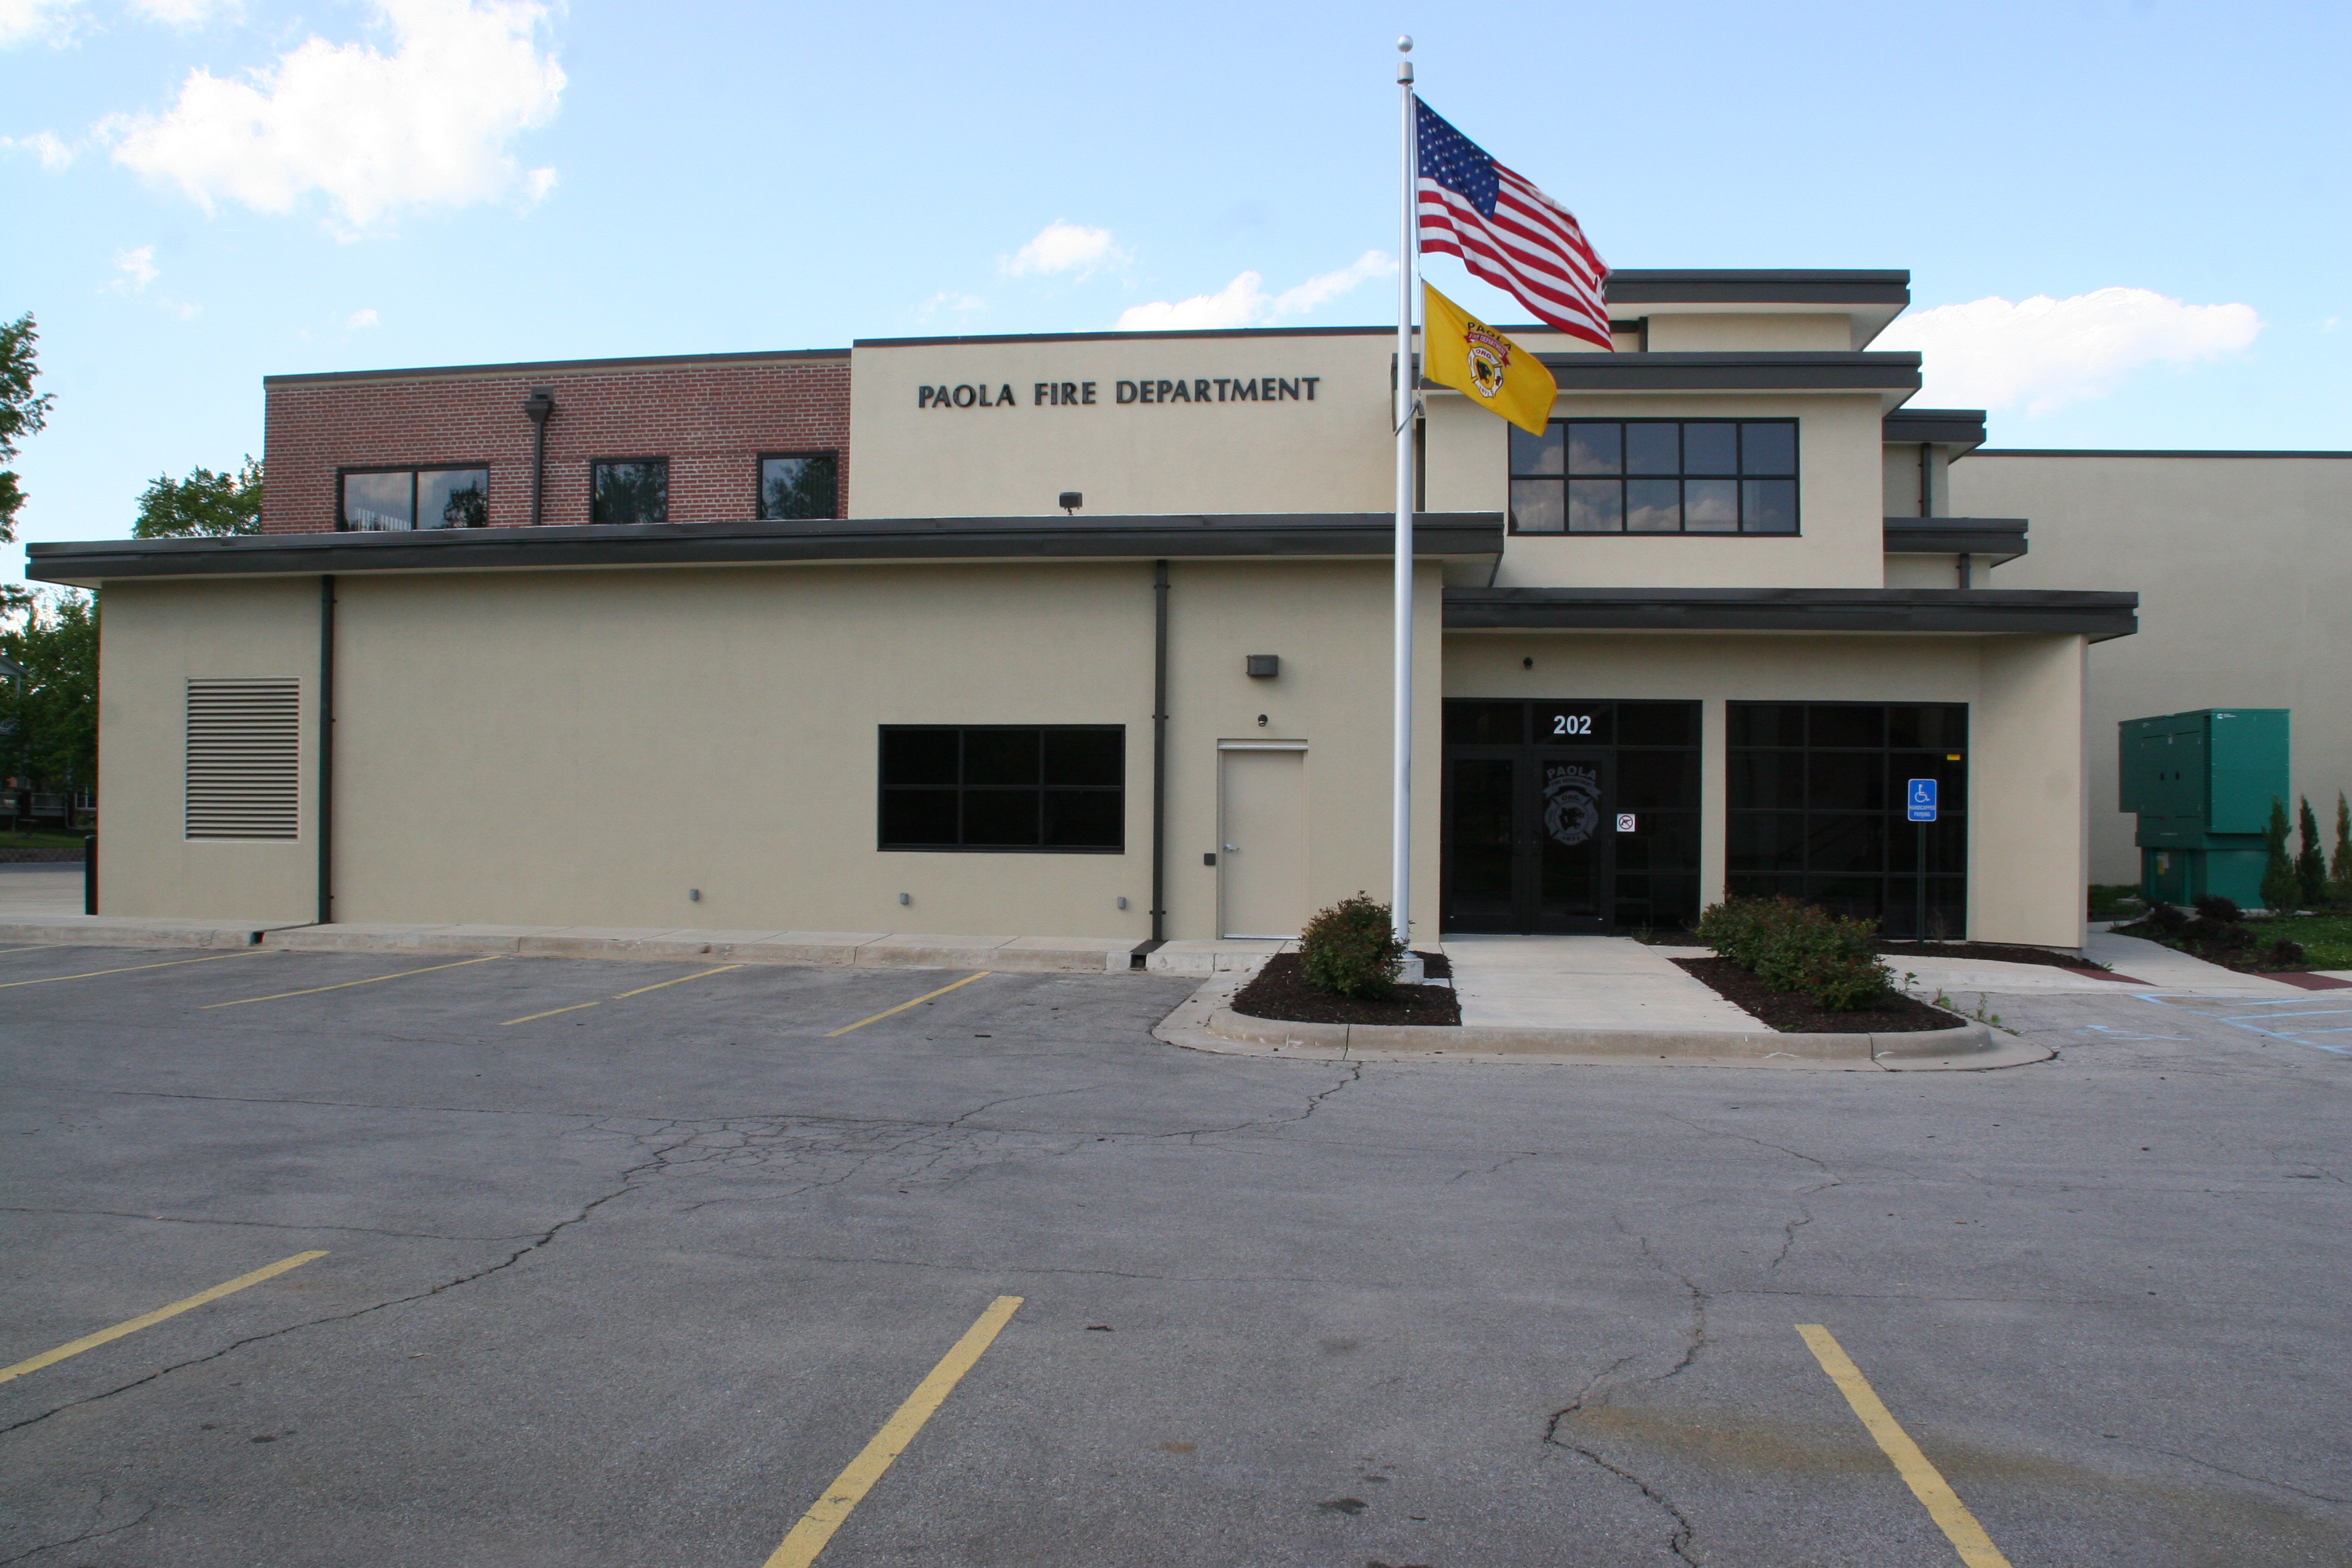 Fire Station Entrance